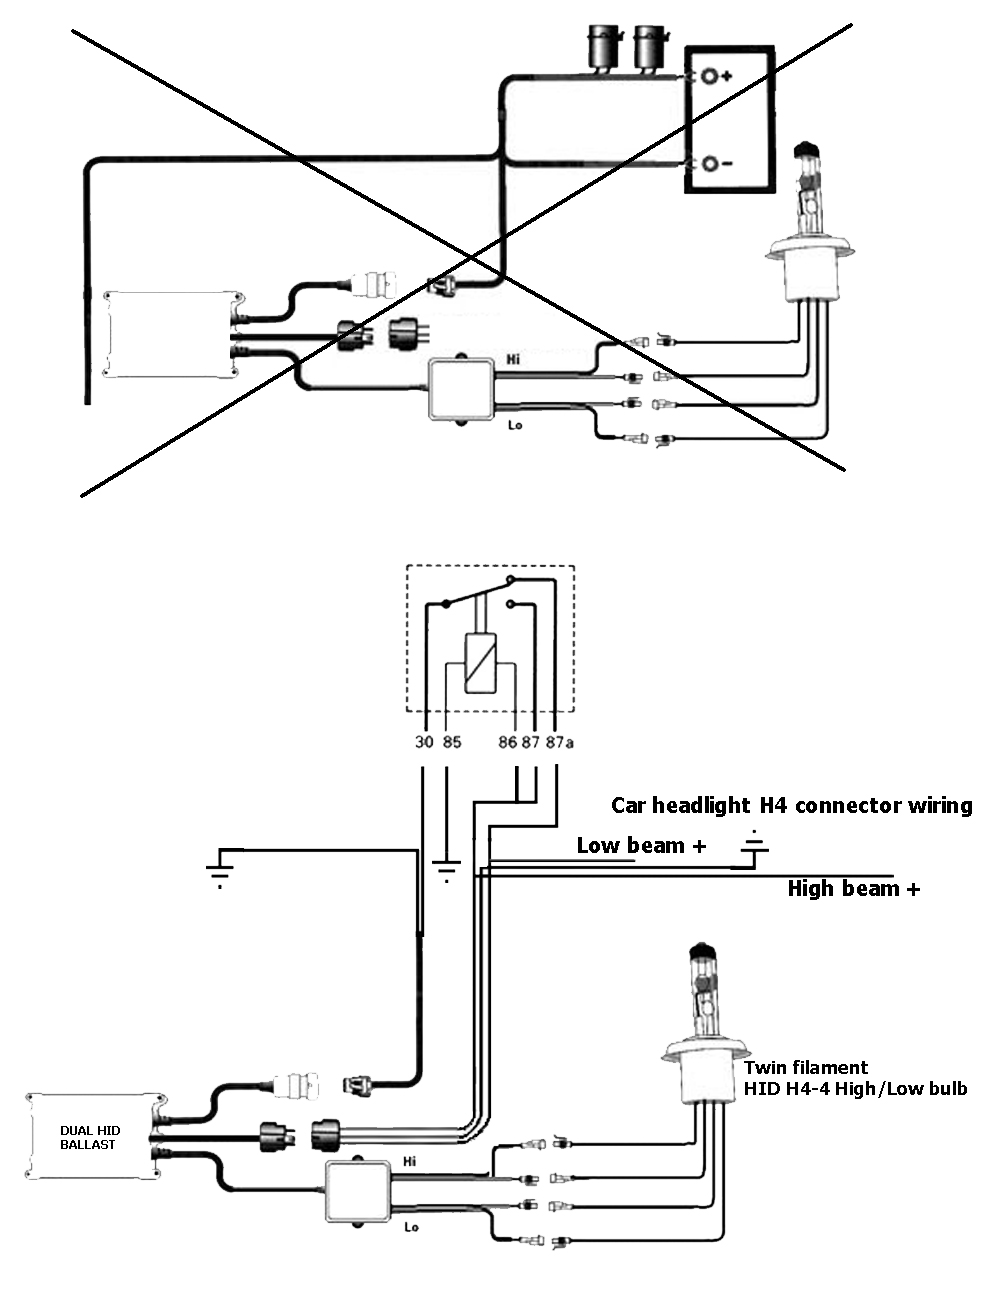 range rover classic wiring harness diagram wiring diagram database \u2022  Range Rover Wiring Diagram PDF